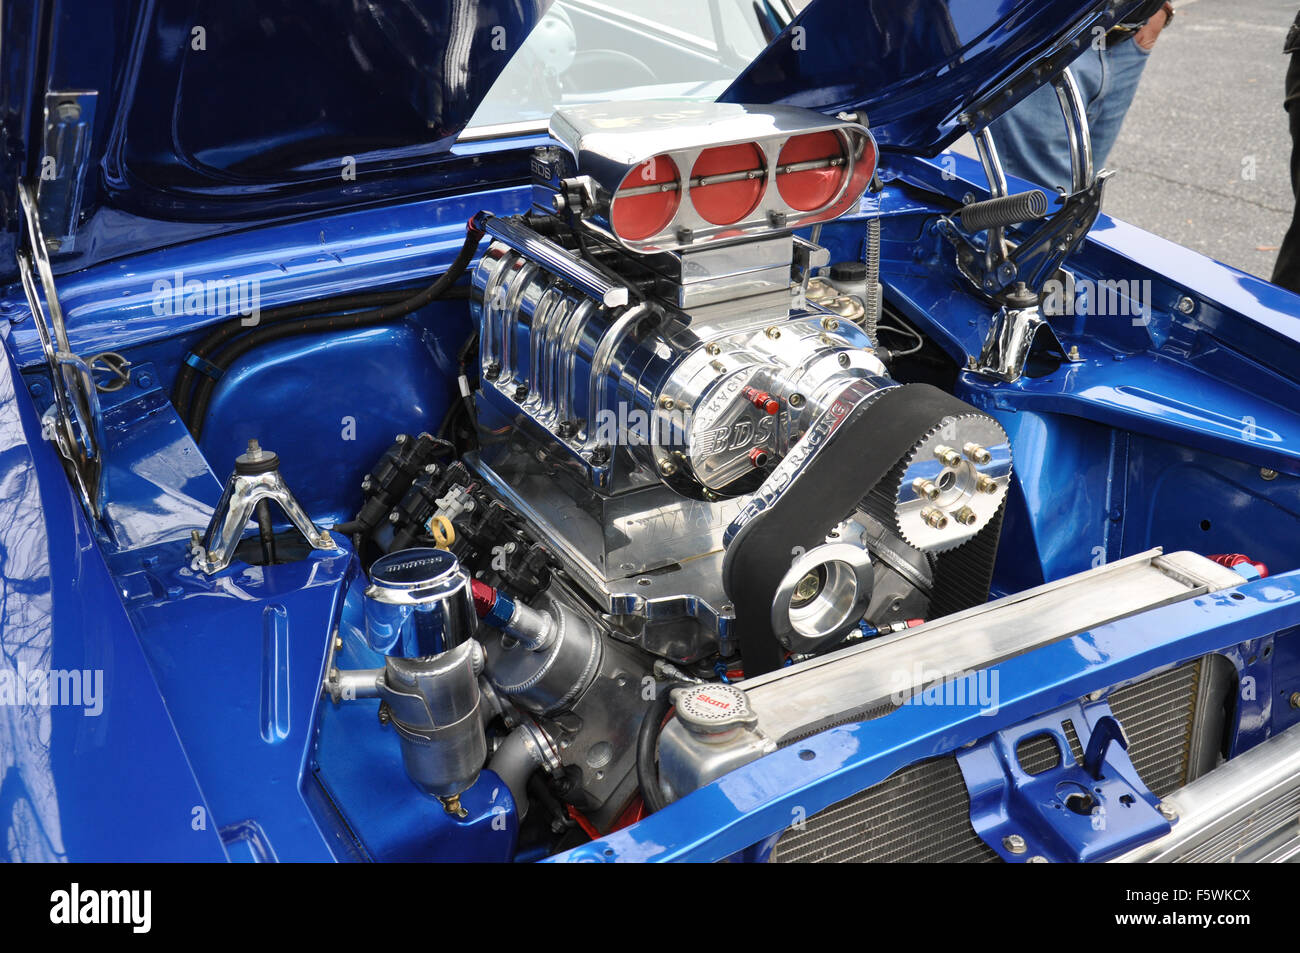 A Custom Supercharged Engine at a car show Stock Photo